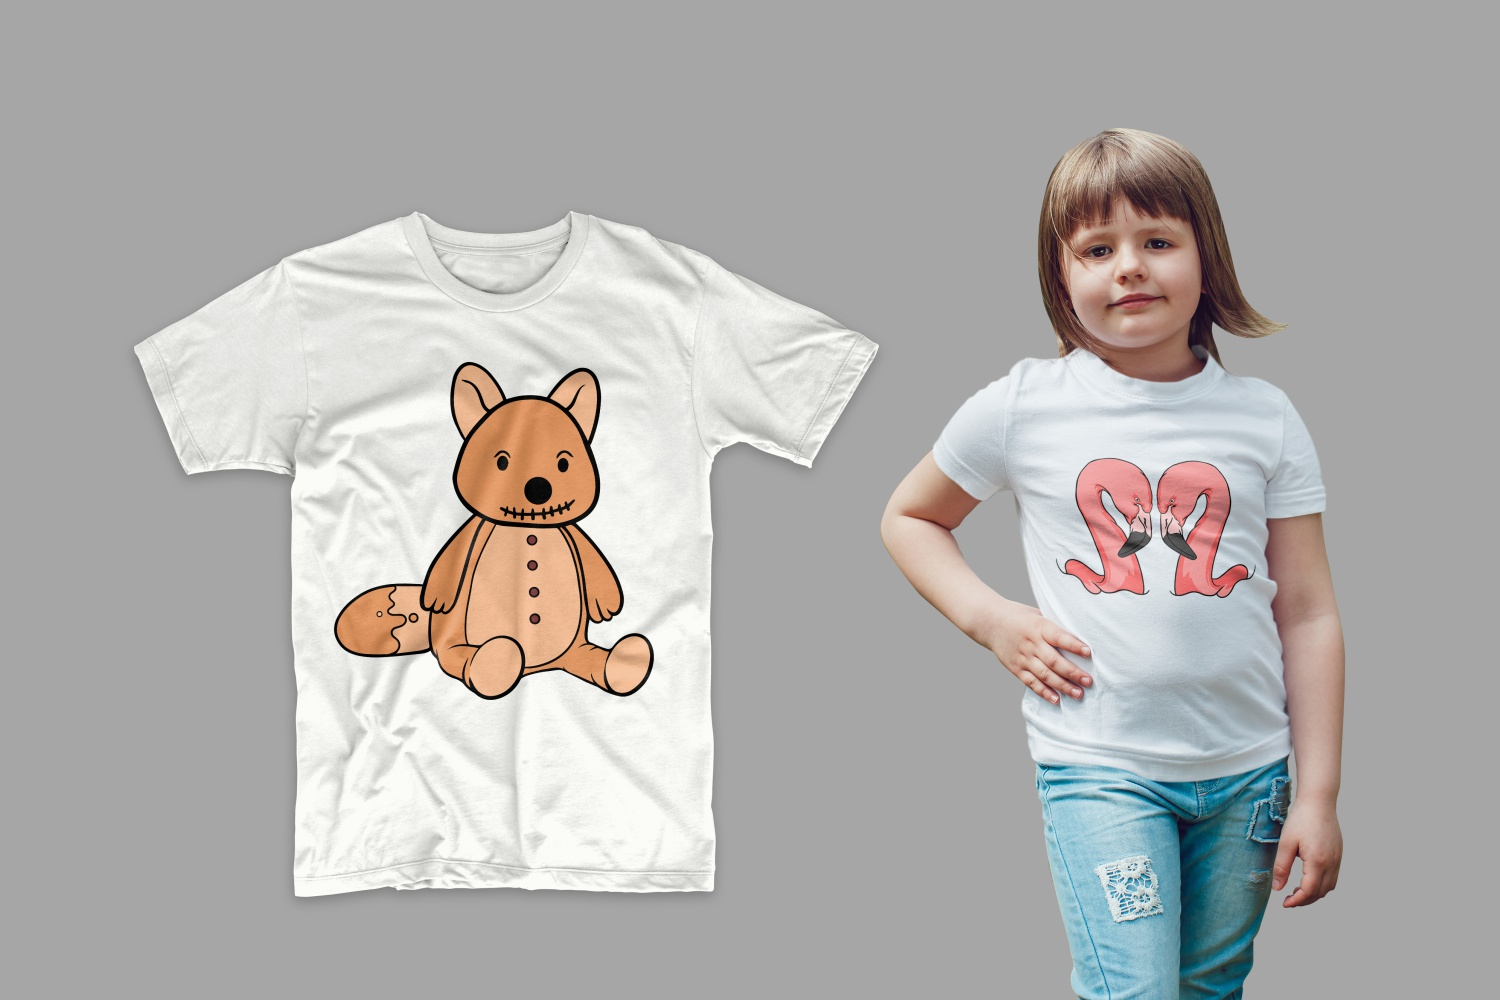 T-shirts with flamingos and teddy bear.